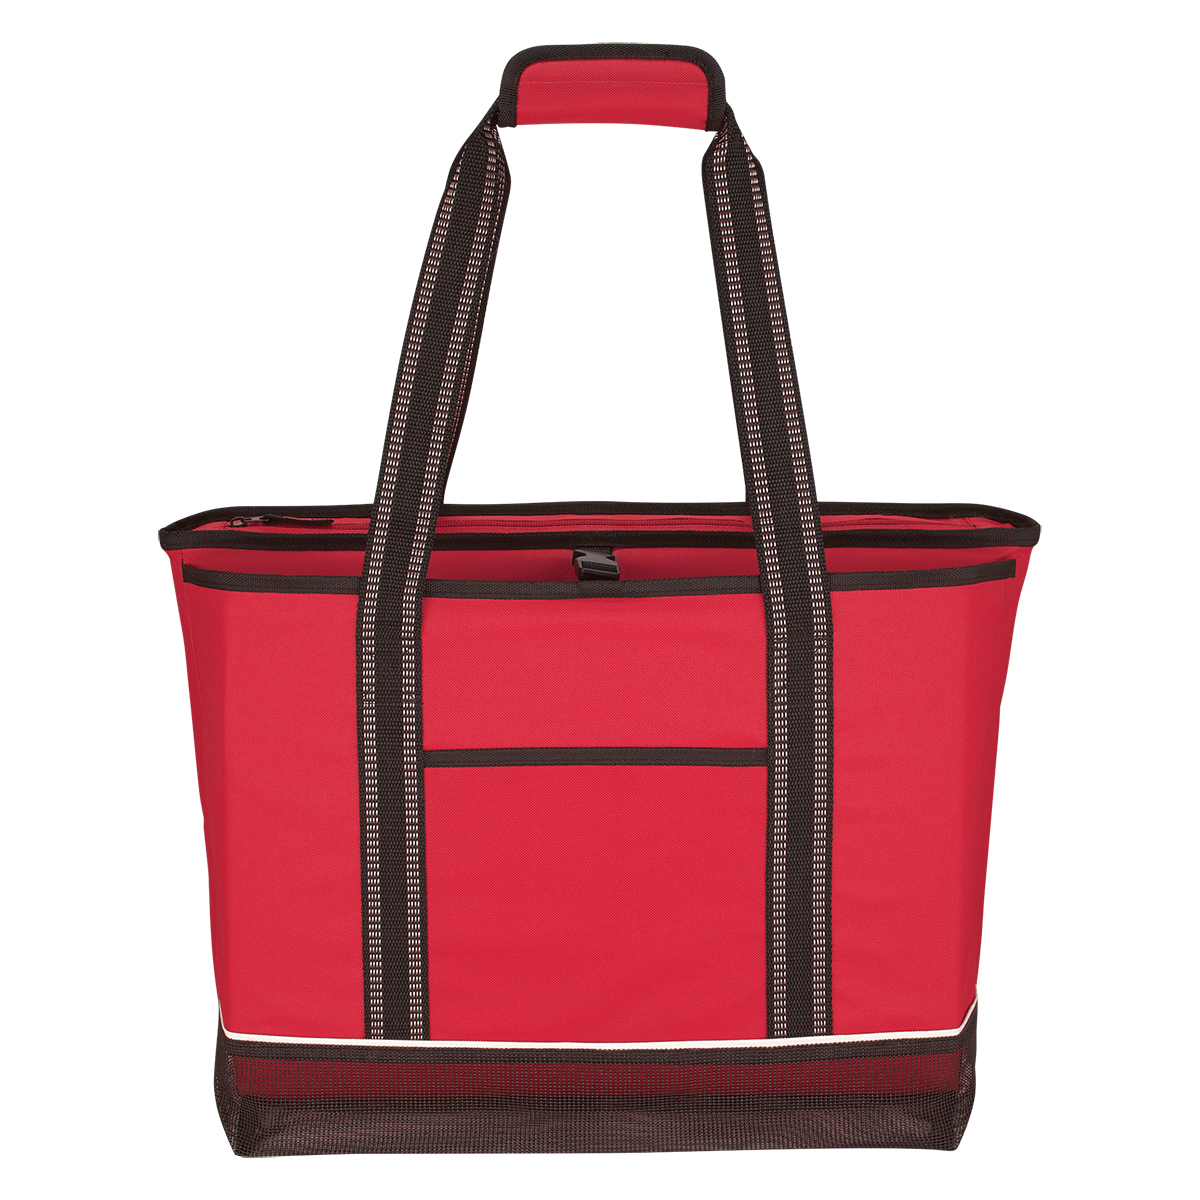 Printed Daytona Cooler Tote Bag